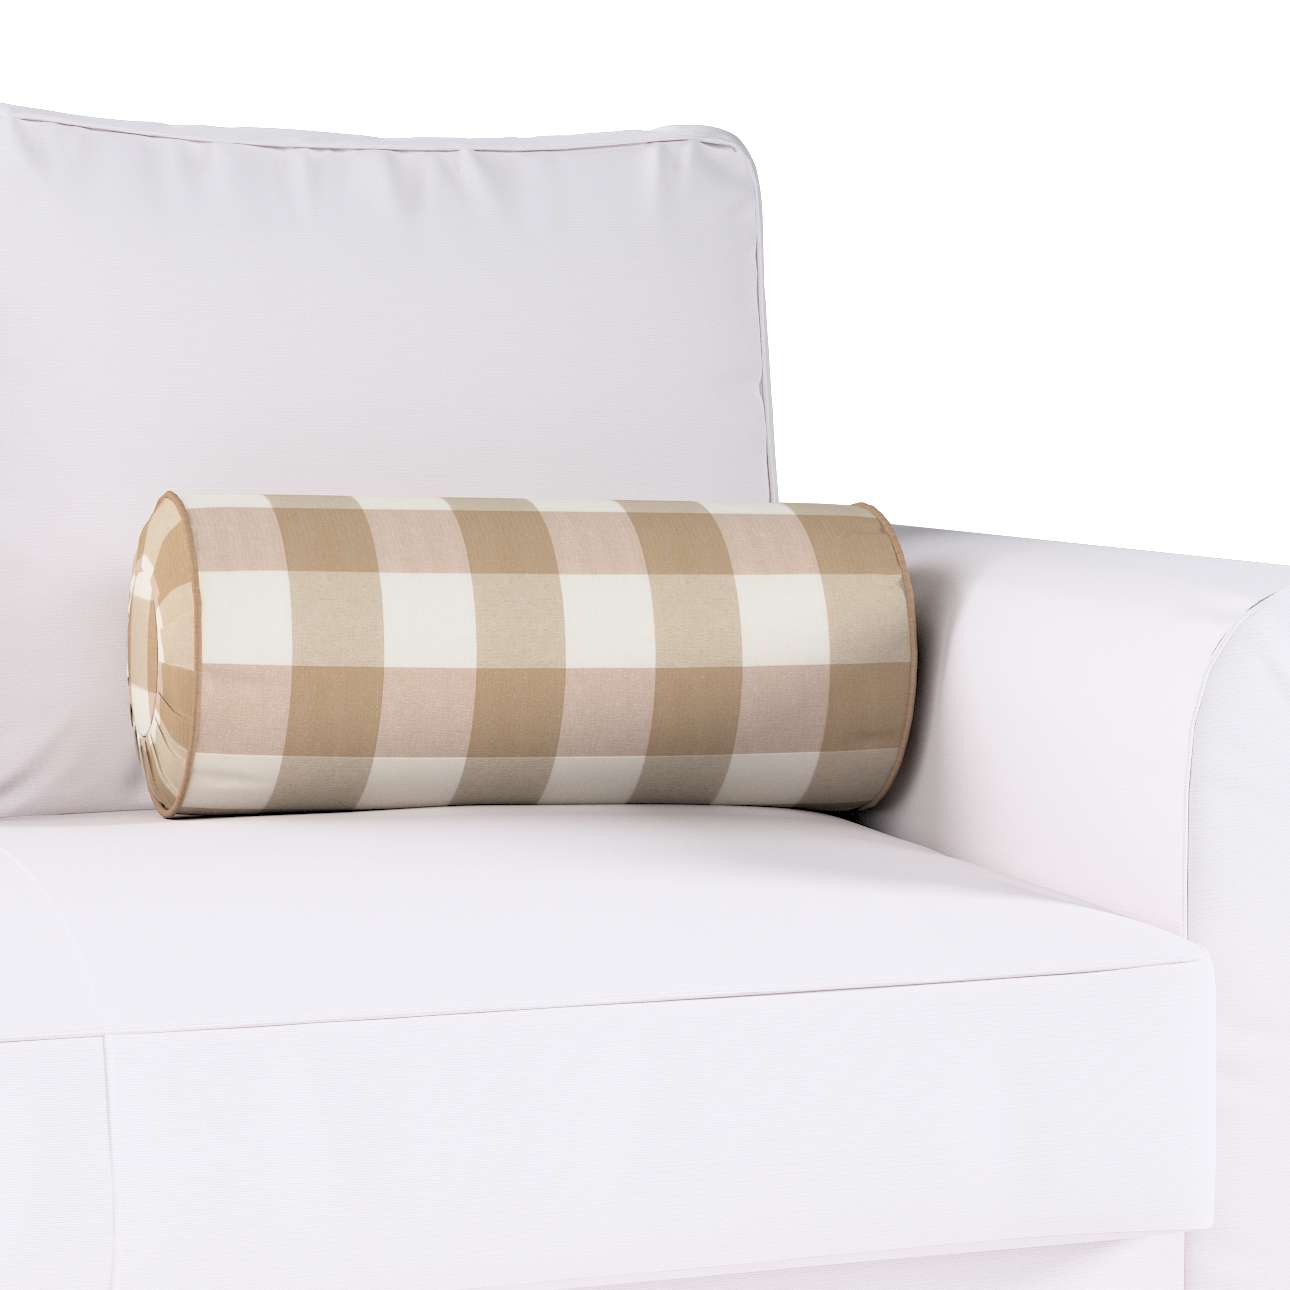 Bolster cushion with pleats in collection Quadro, fabric: 136-08